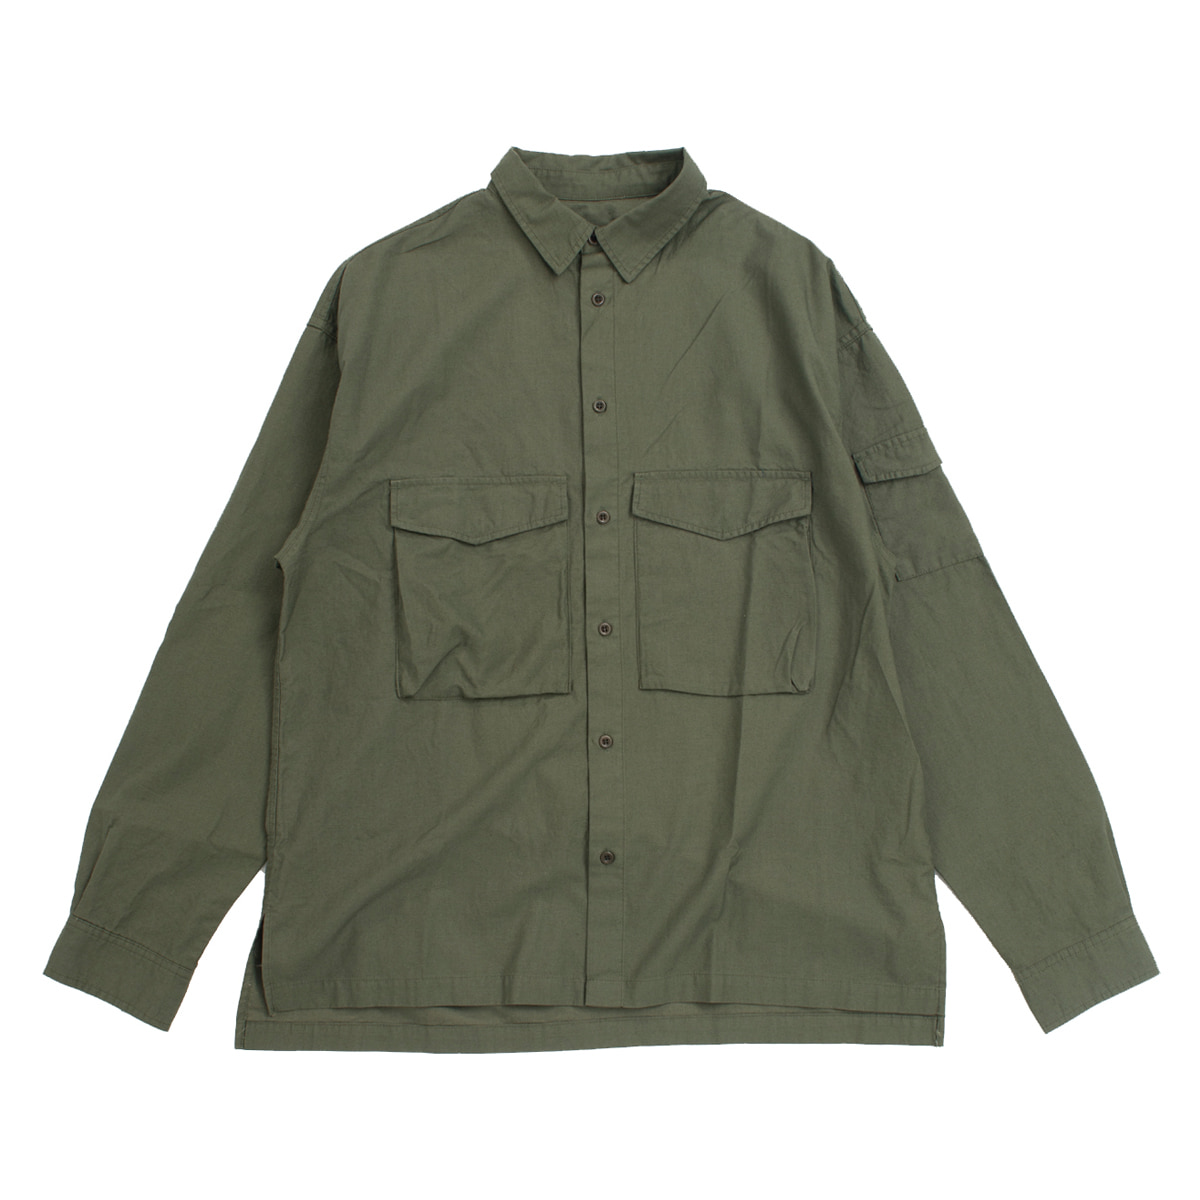 [8DIVISION] UTILITY SHIRT 'OLIVE'